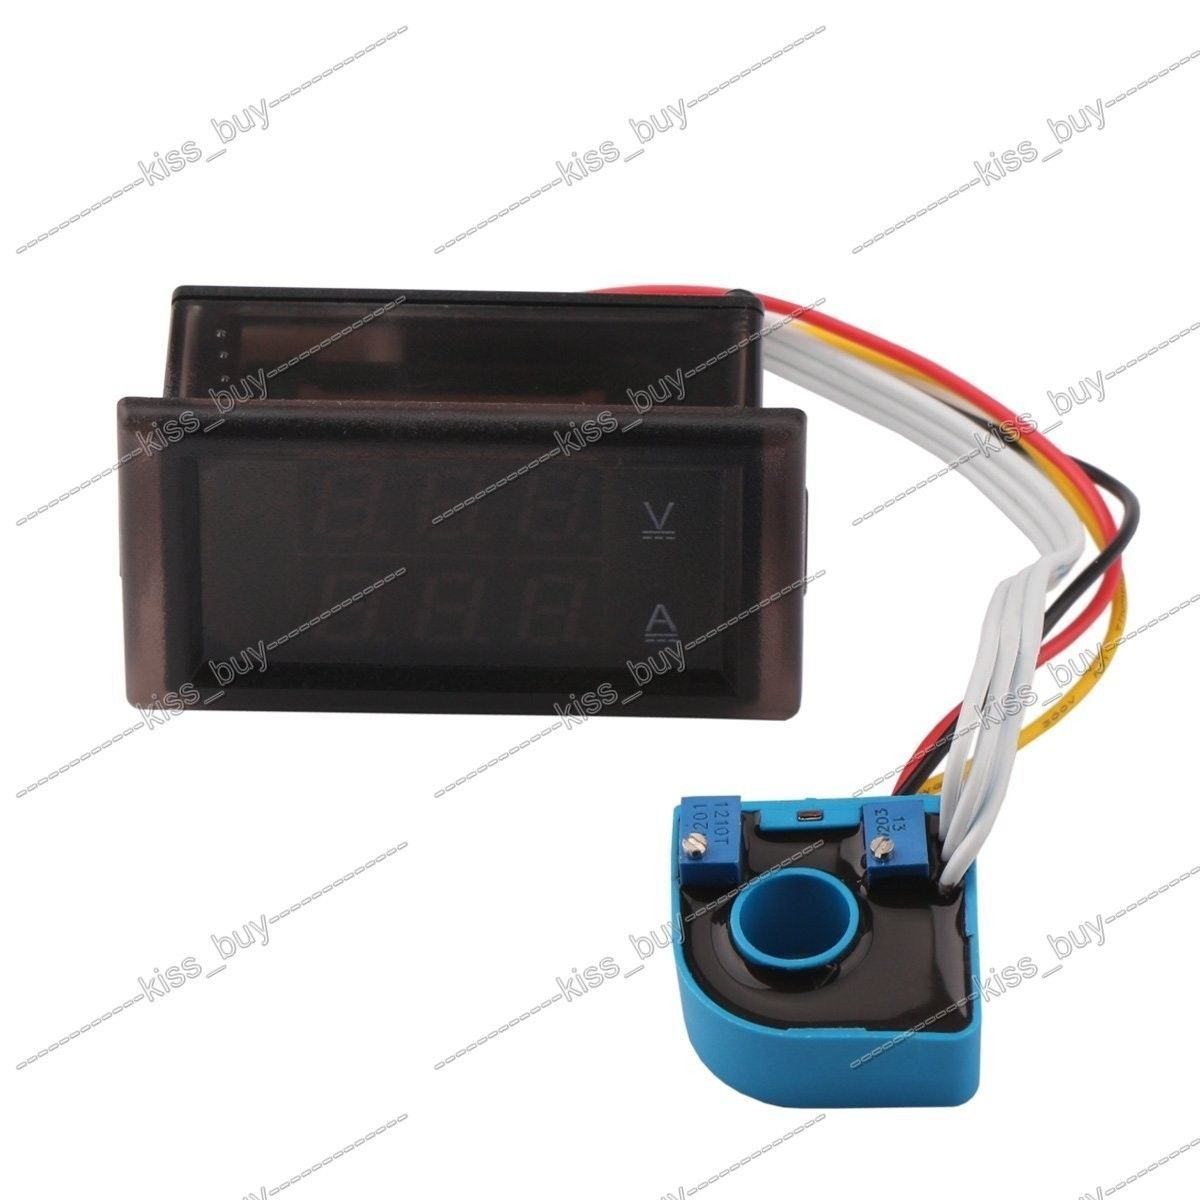 medium resolution of dc 0 600v 100a volt amp meter dual display voltage current 12v 24v car voltmeter ammeter charge discharge solar battery monitor in integrated circuits from